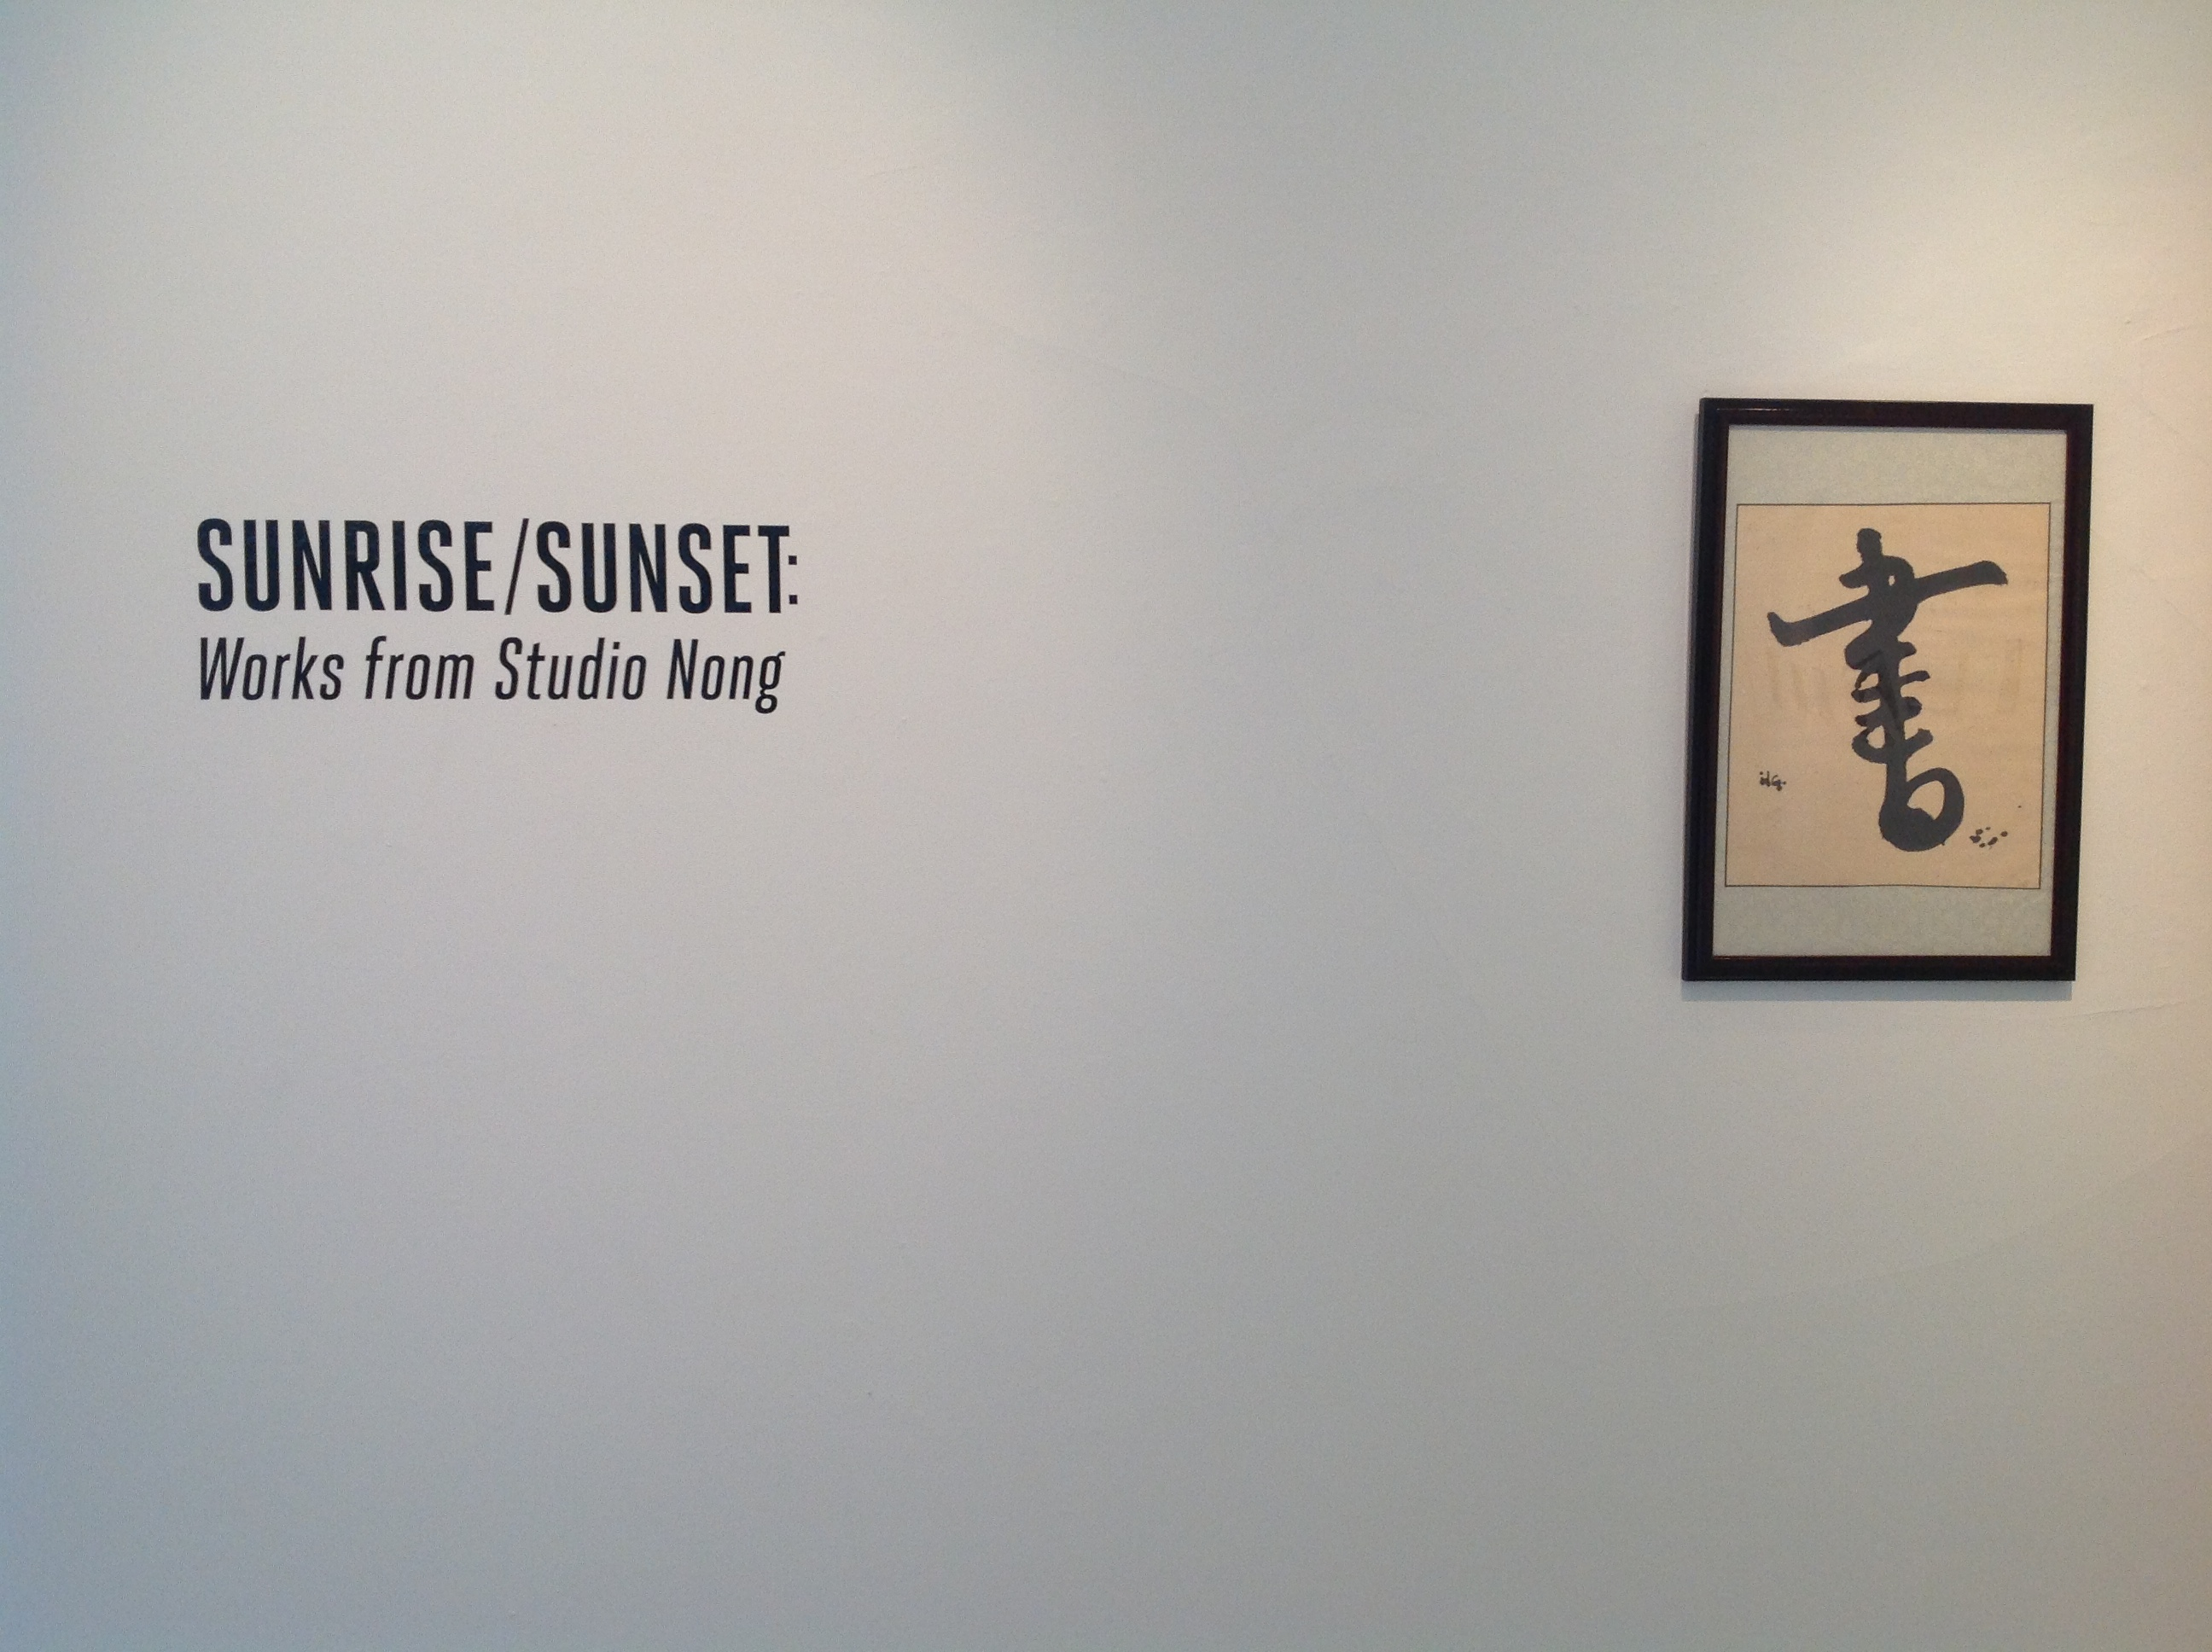 SunRise/Sunset Work from Studio Nong